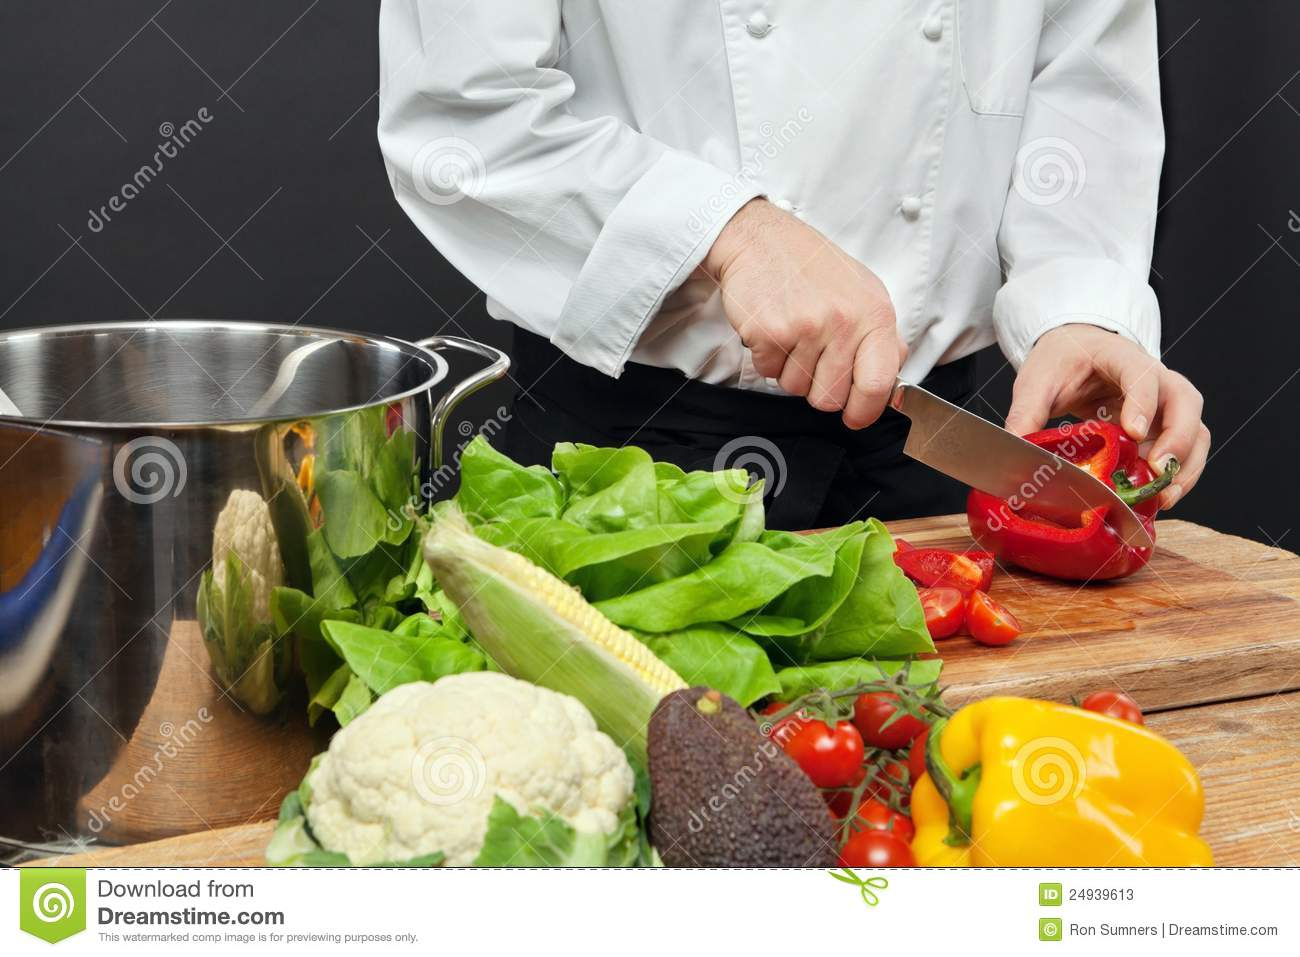 Chopping Vegetables Stock Photos - Image: 24939613